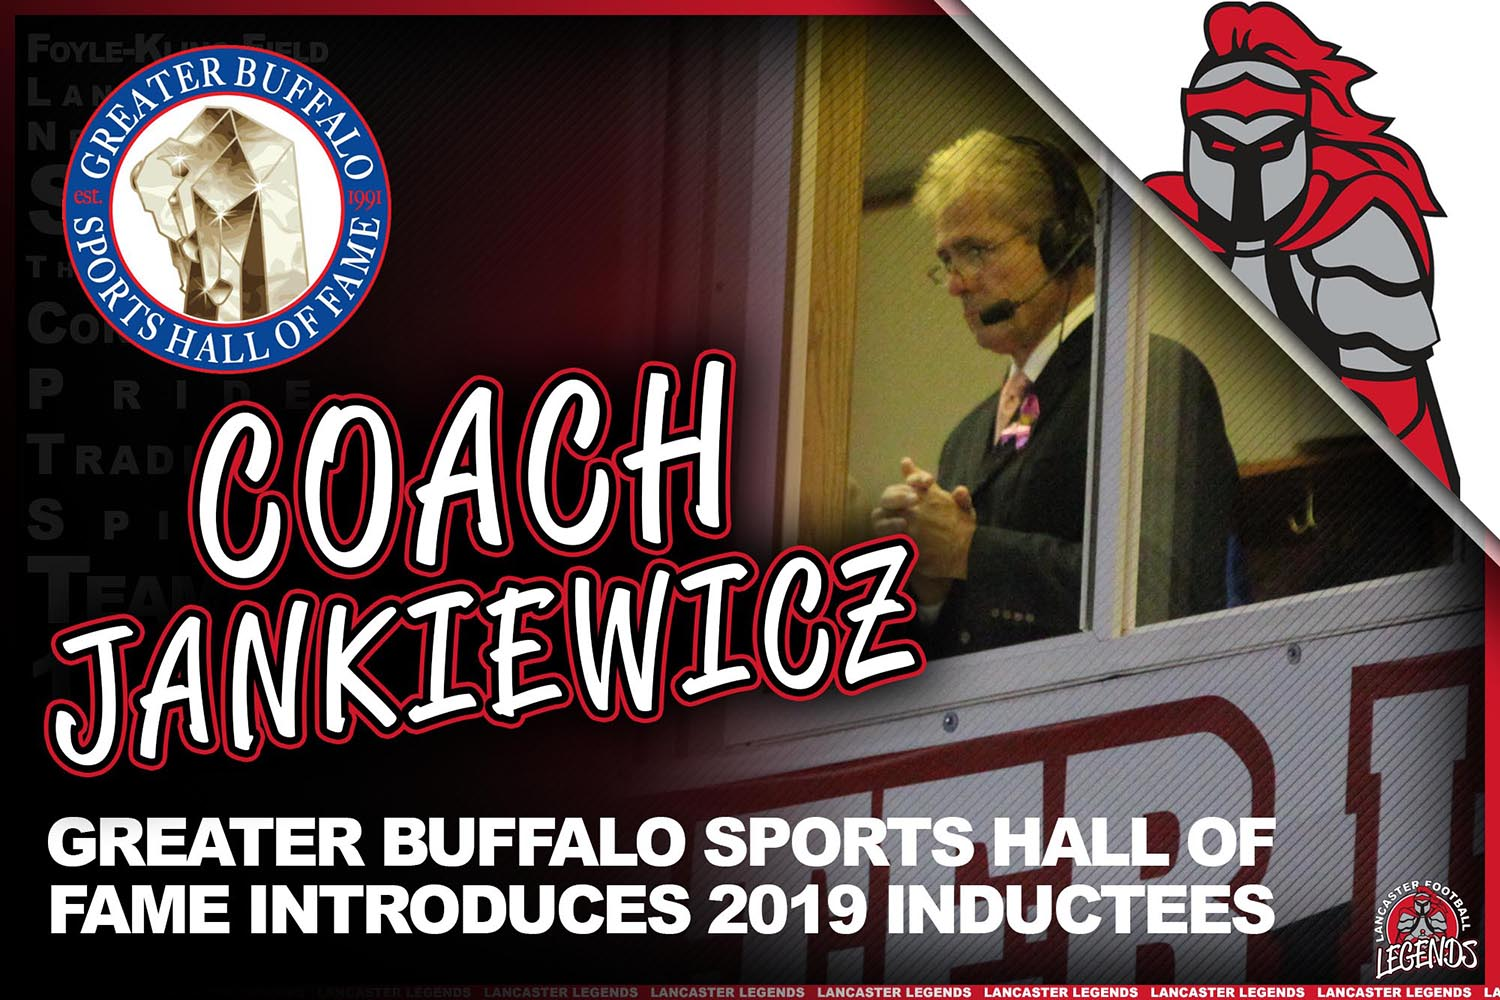 Greater Buffalo Sports Hall of Fame Introduces 2019 Inductees